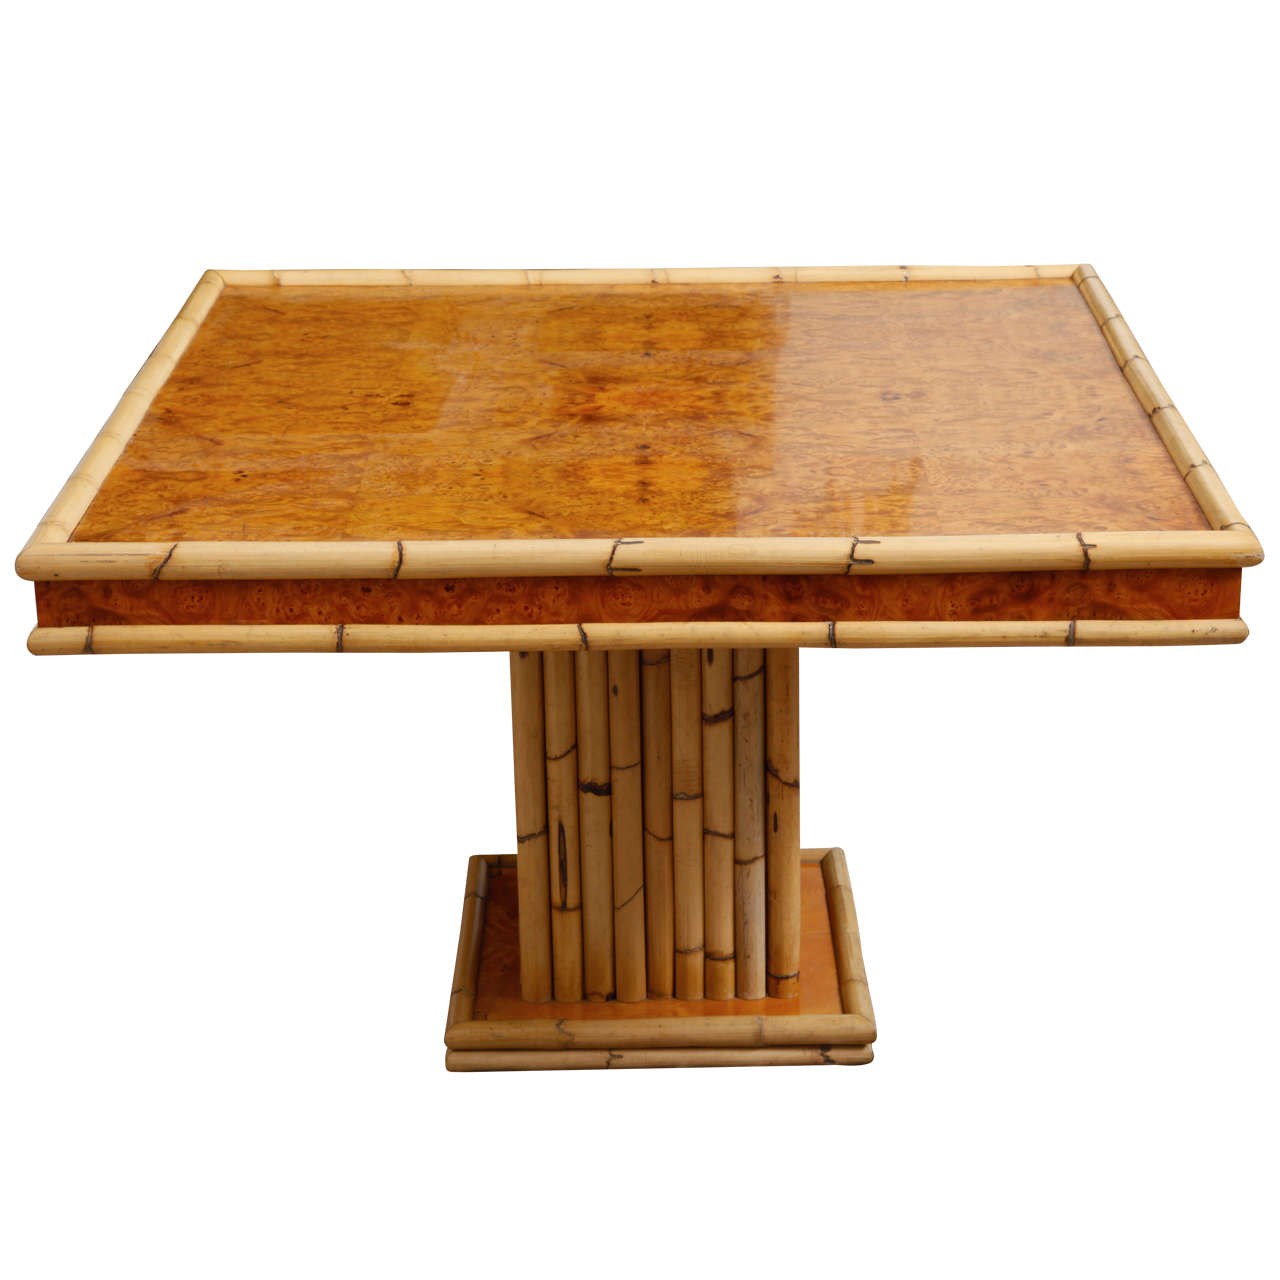 Square Steel Coffee Table Italian C 1970: A 1970's Bamboo And Veneer Occasional Table At 1stdibs